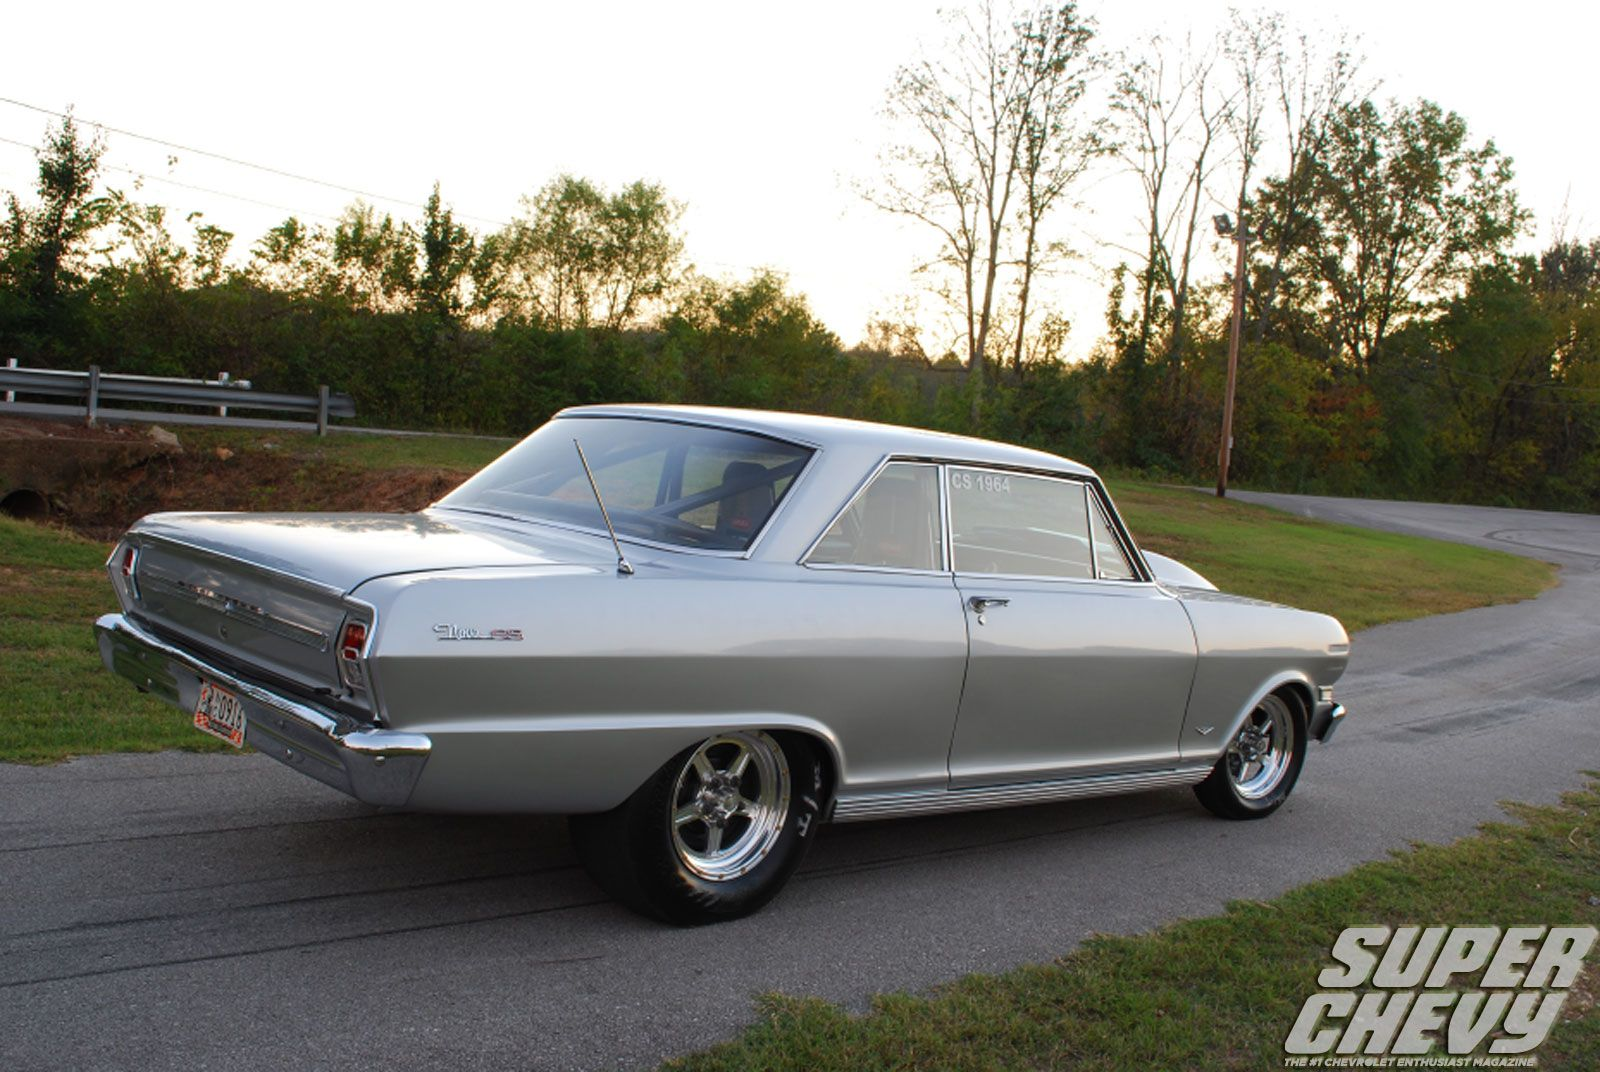 All Chevy 1964 chevy ii : Chevy Nova 2 | Sucp 1108 06 1964 Chevrolet Nova II Photo 3 | Cars ...